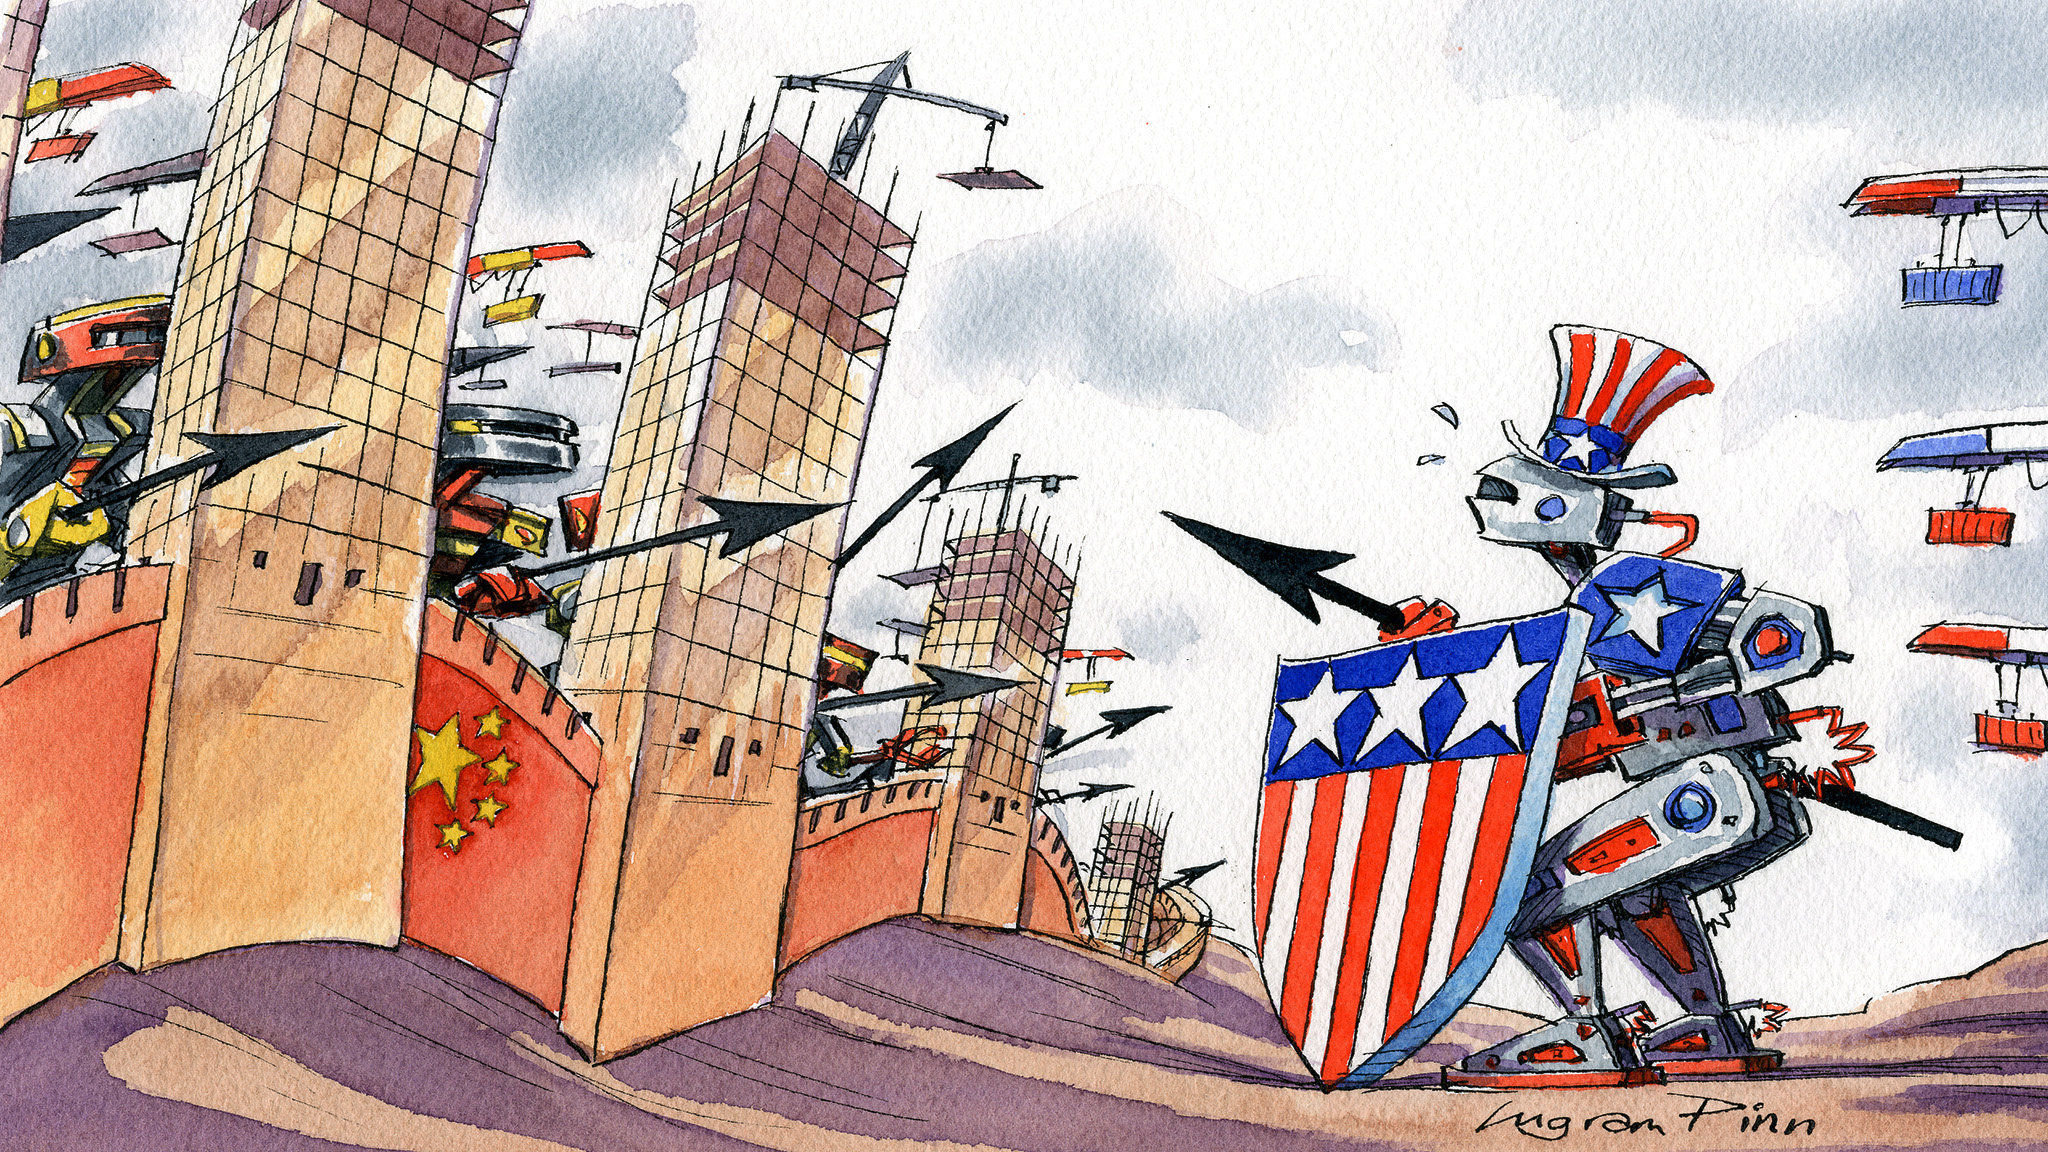 Righteous anger from the US will not win the tech war with China